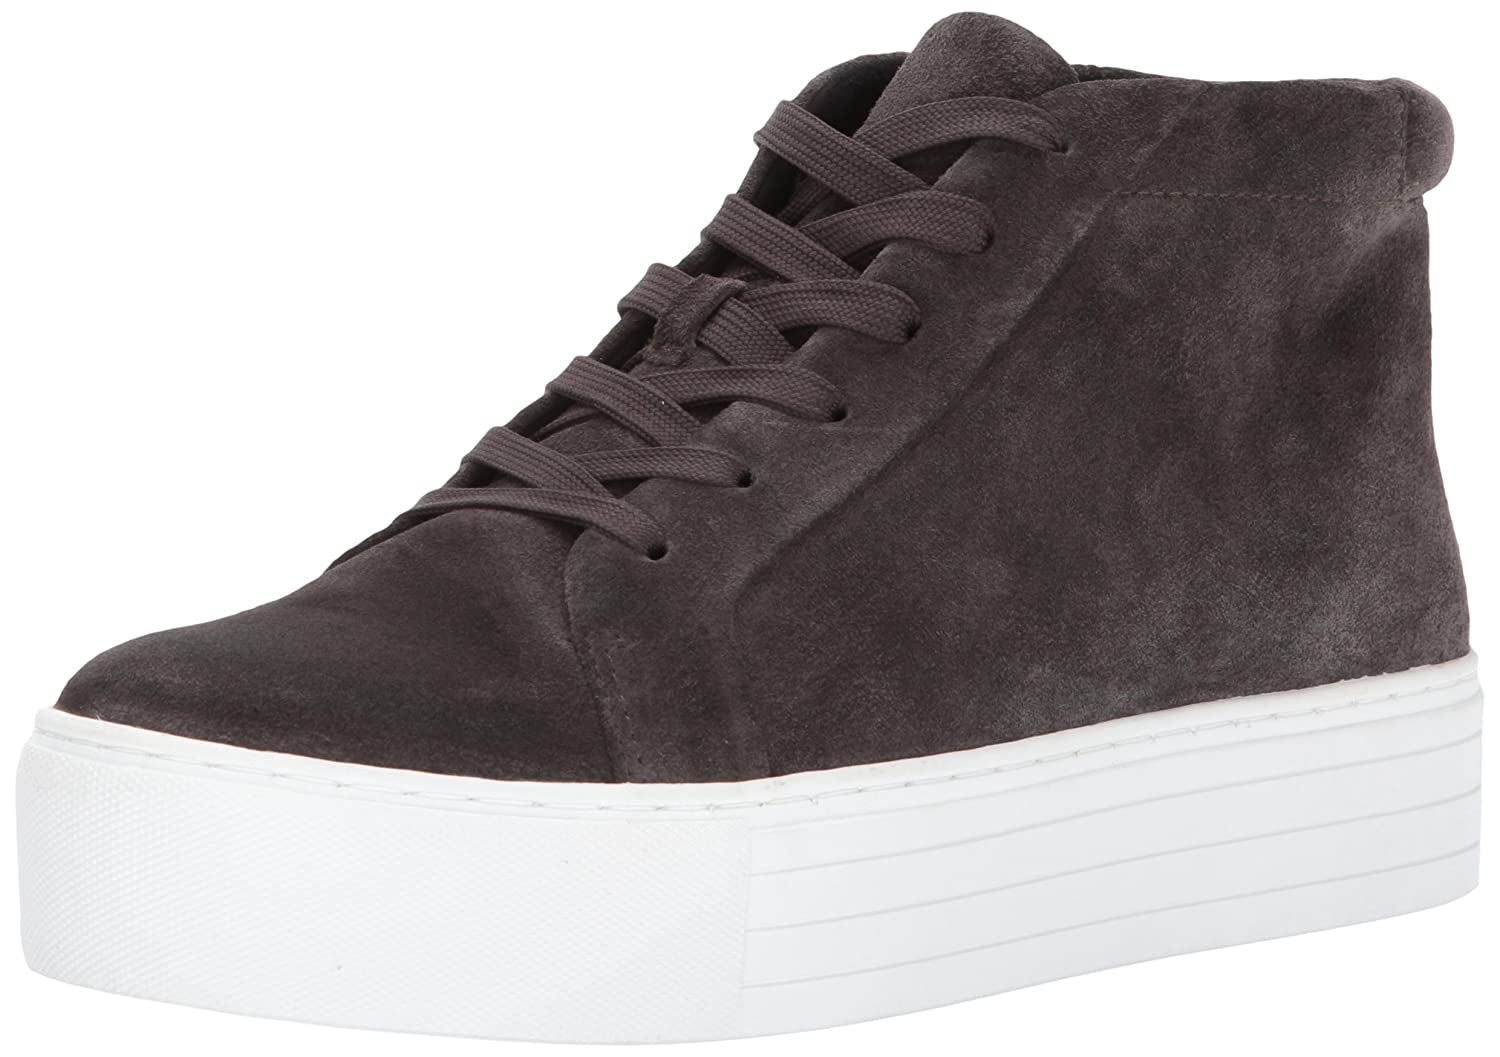 Kenneth Cole New York Women's Janette High Top Lace up Platform Patent Fashion Sneaker B071CPNKHS 8 M US|Asphault